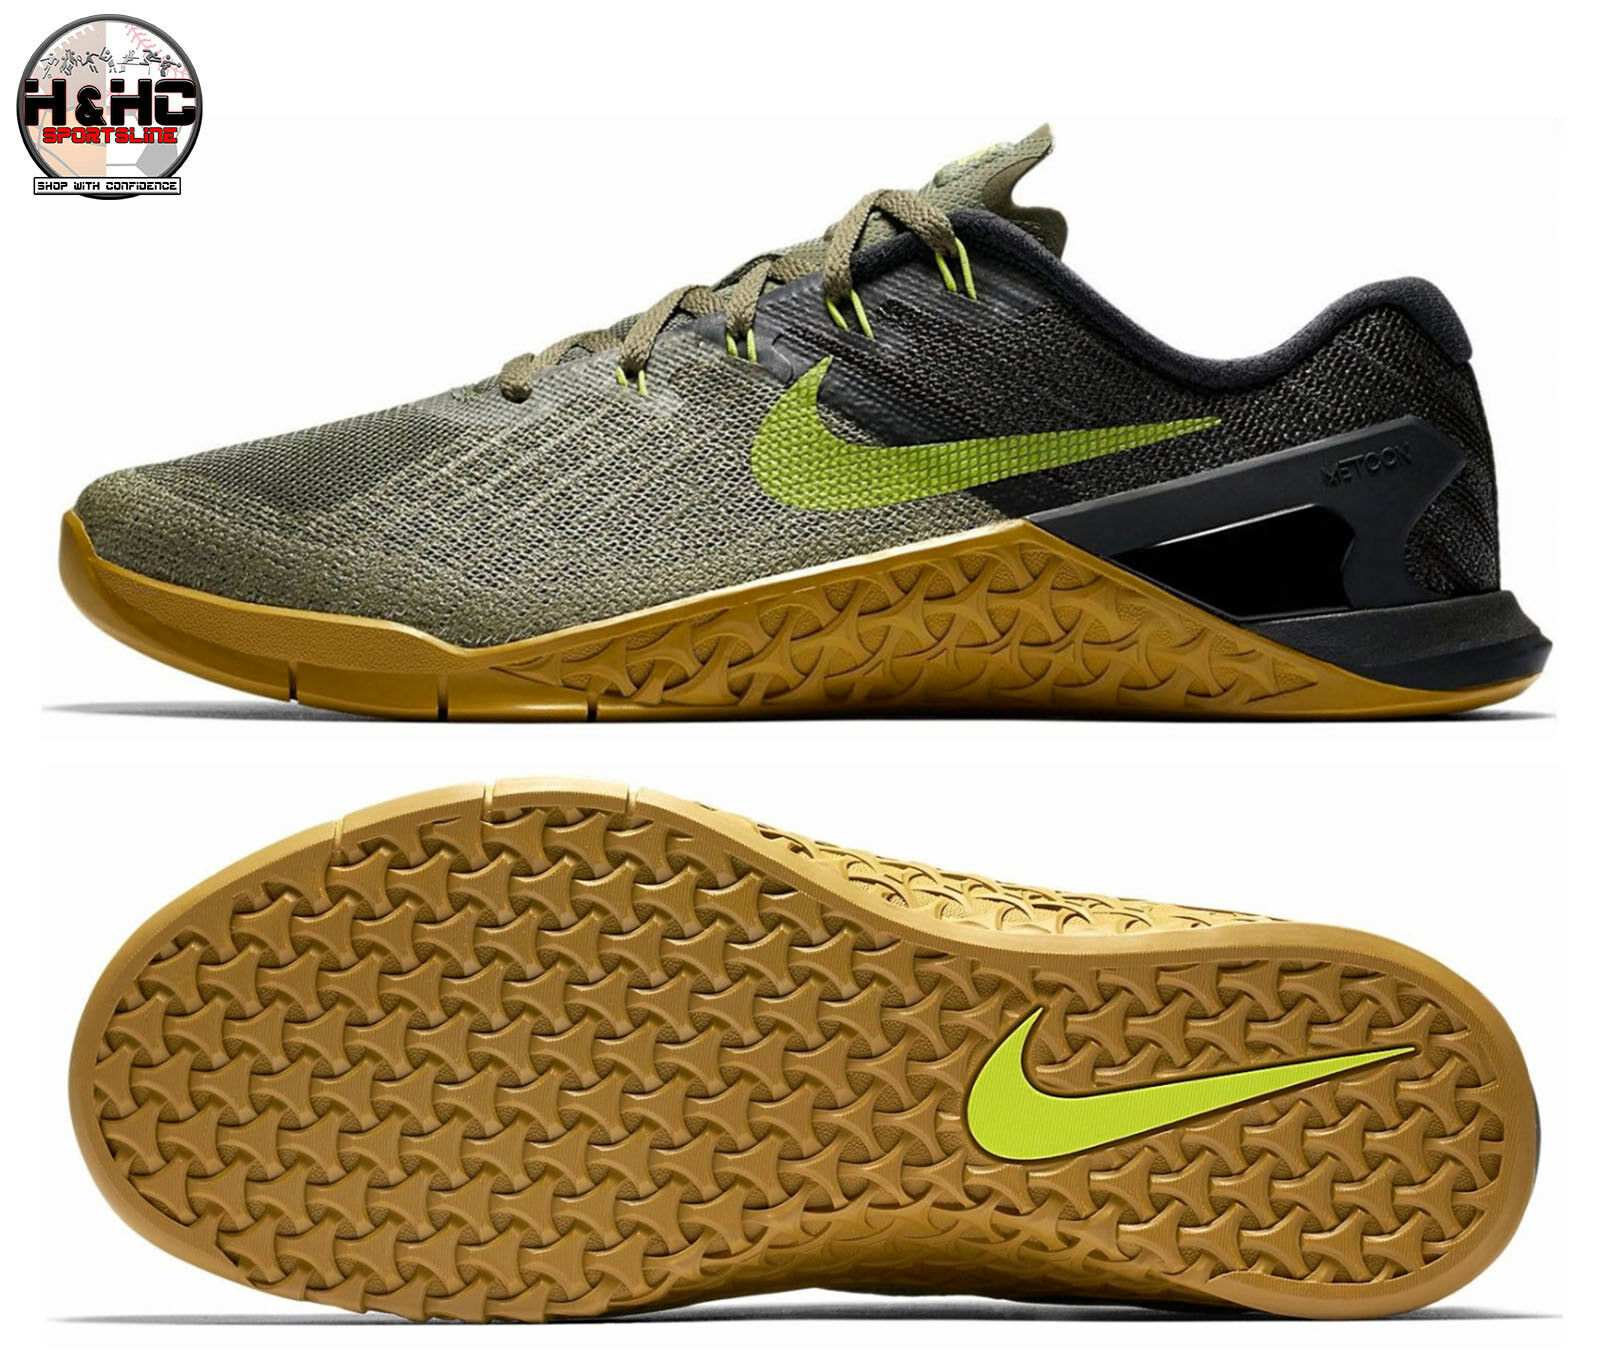 Nike Metcon 3  852928 201 Medium Olive/Bright Cactus Men's Training Shoes Sz 8.5